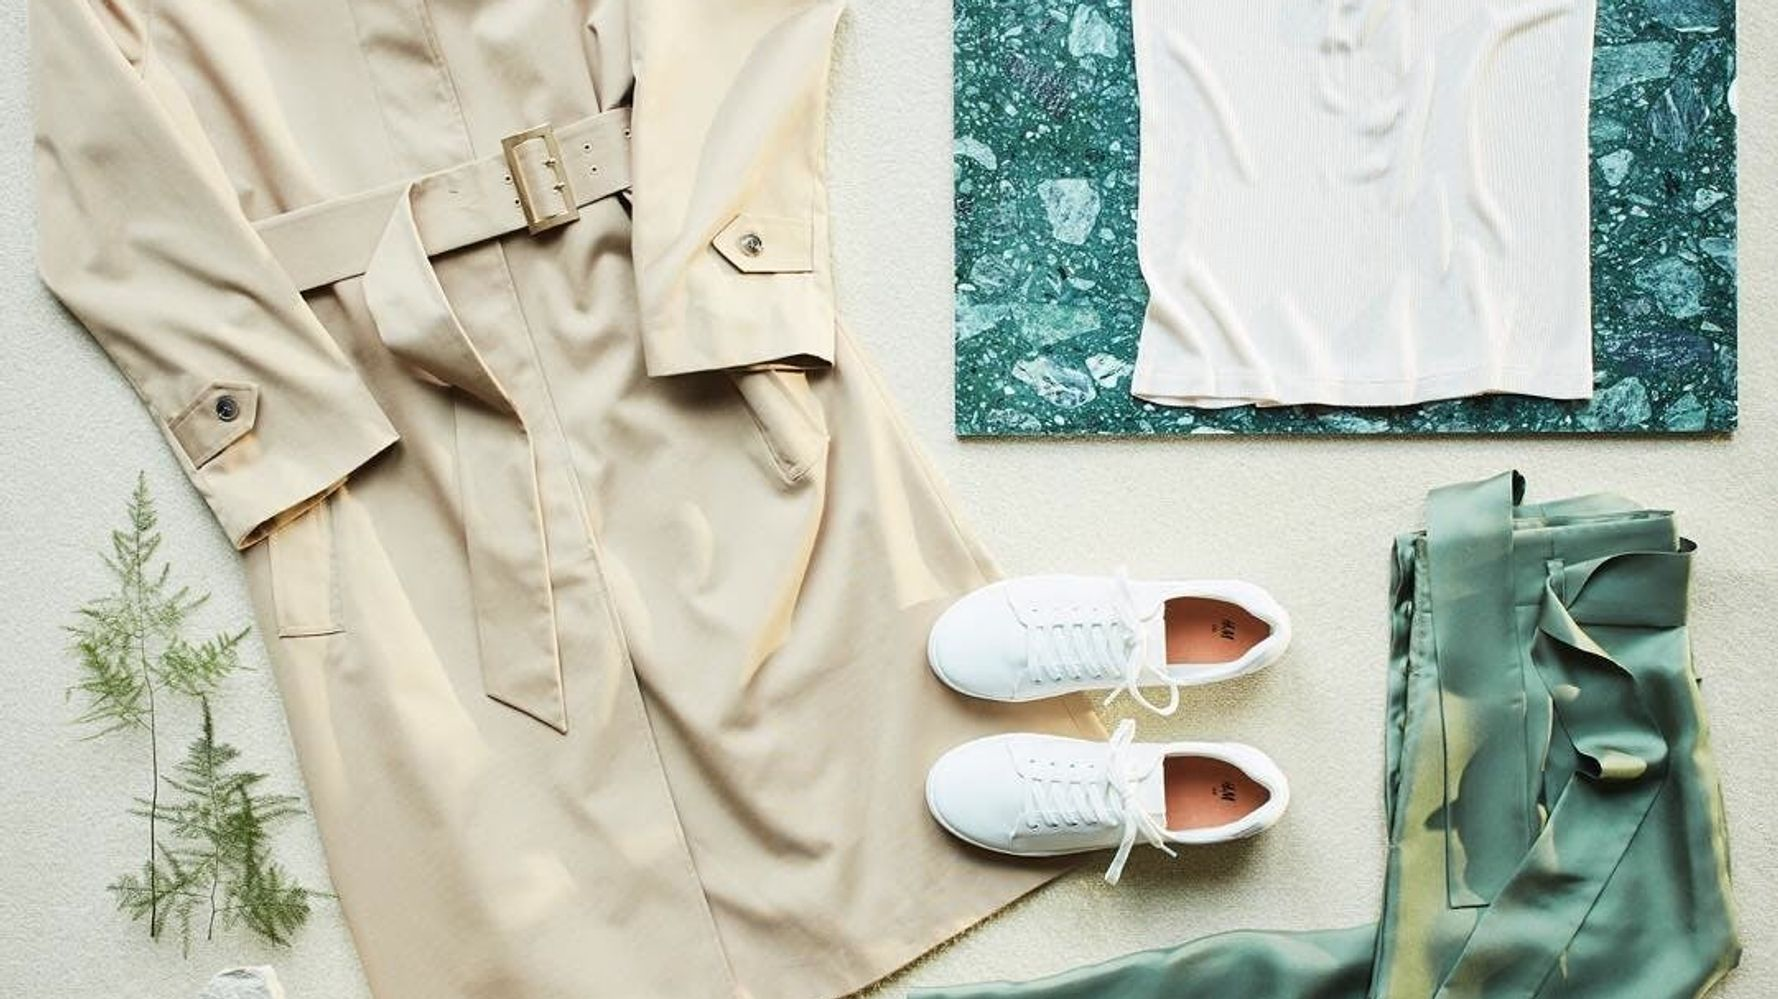 6 Stores Where You Can Donate Old Clothes For A Sweet Reward